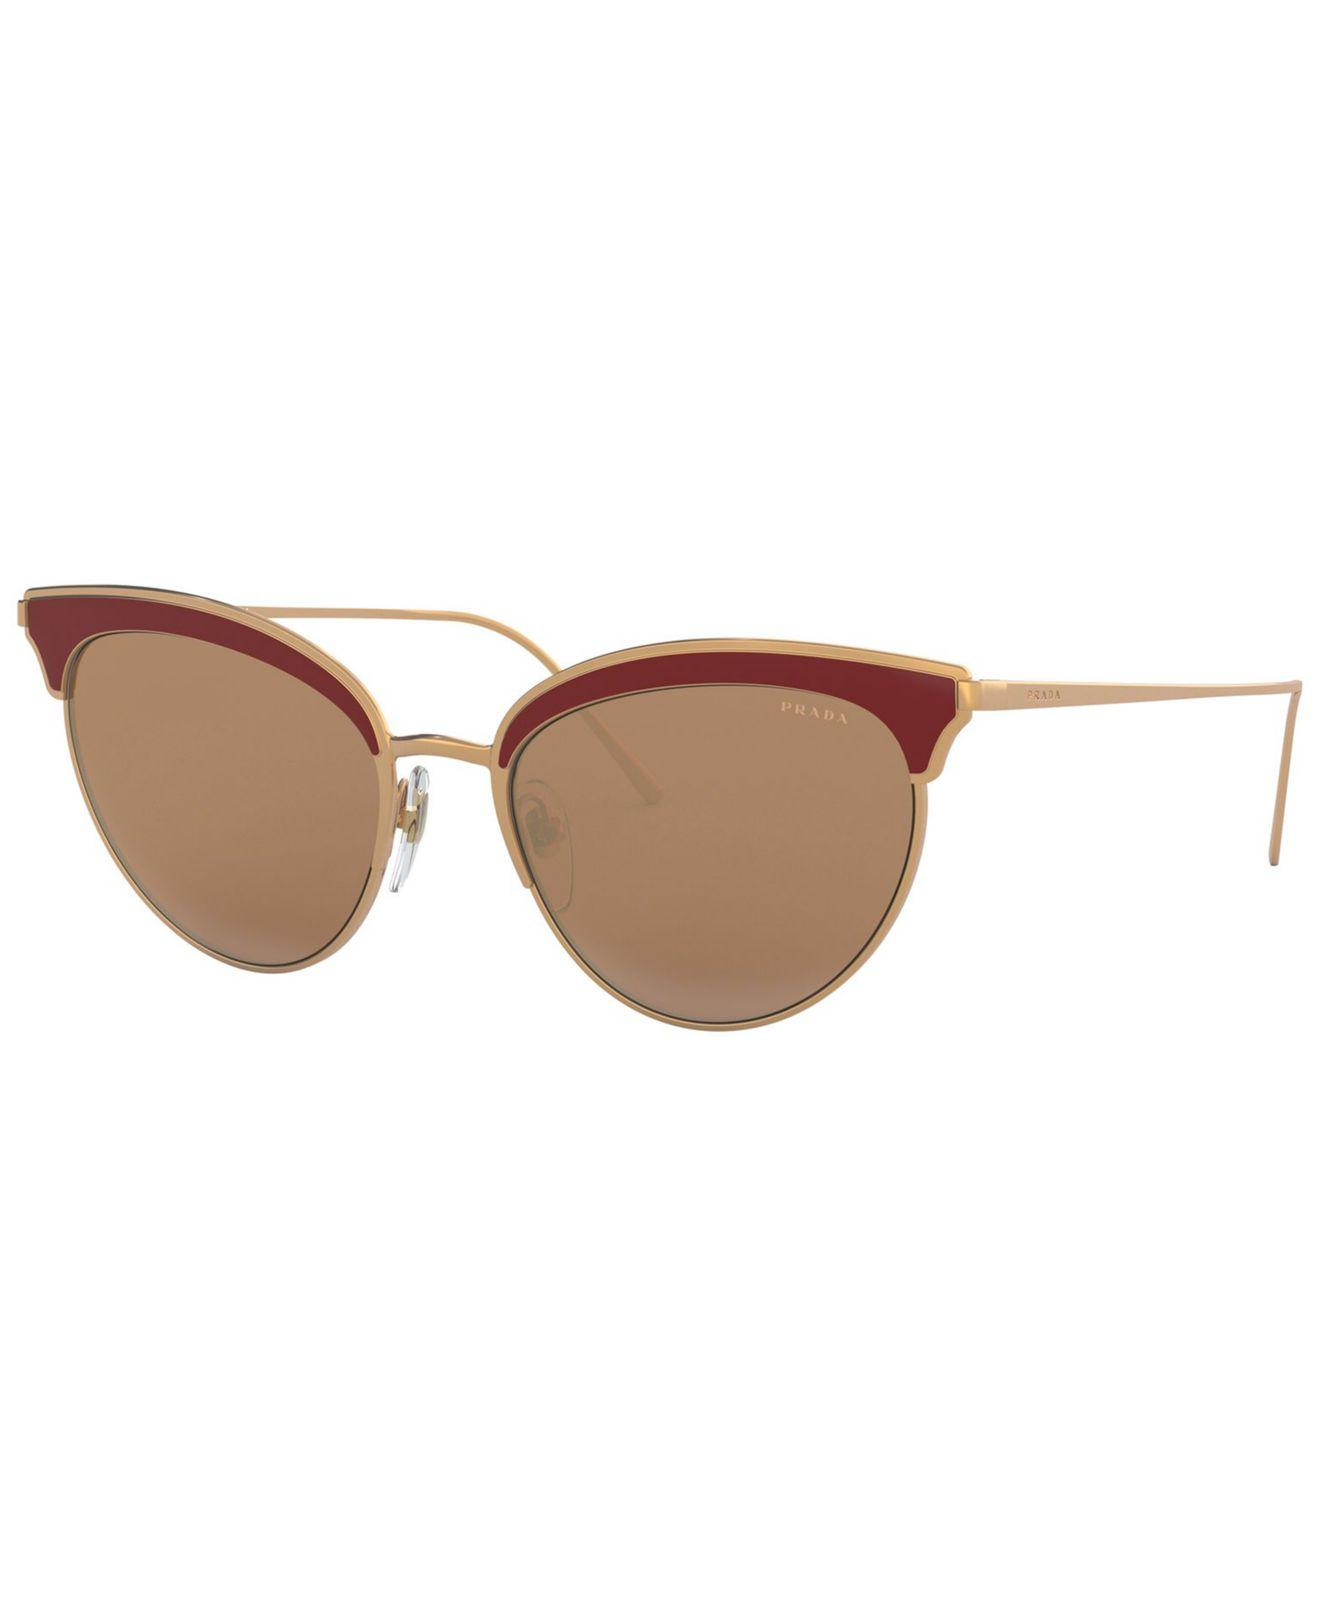 2bcb7b2a698e Prada - Brown Sunglasses - Lyst. View fullscreen